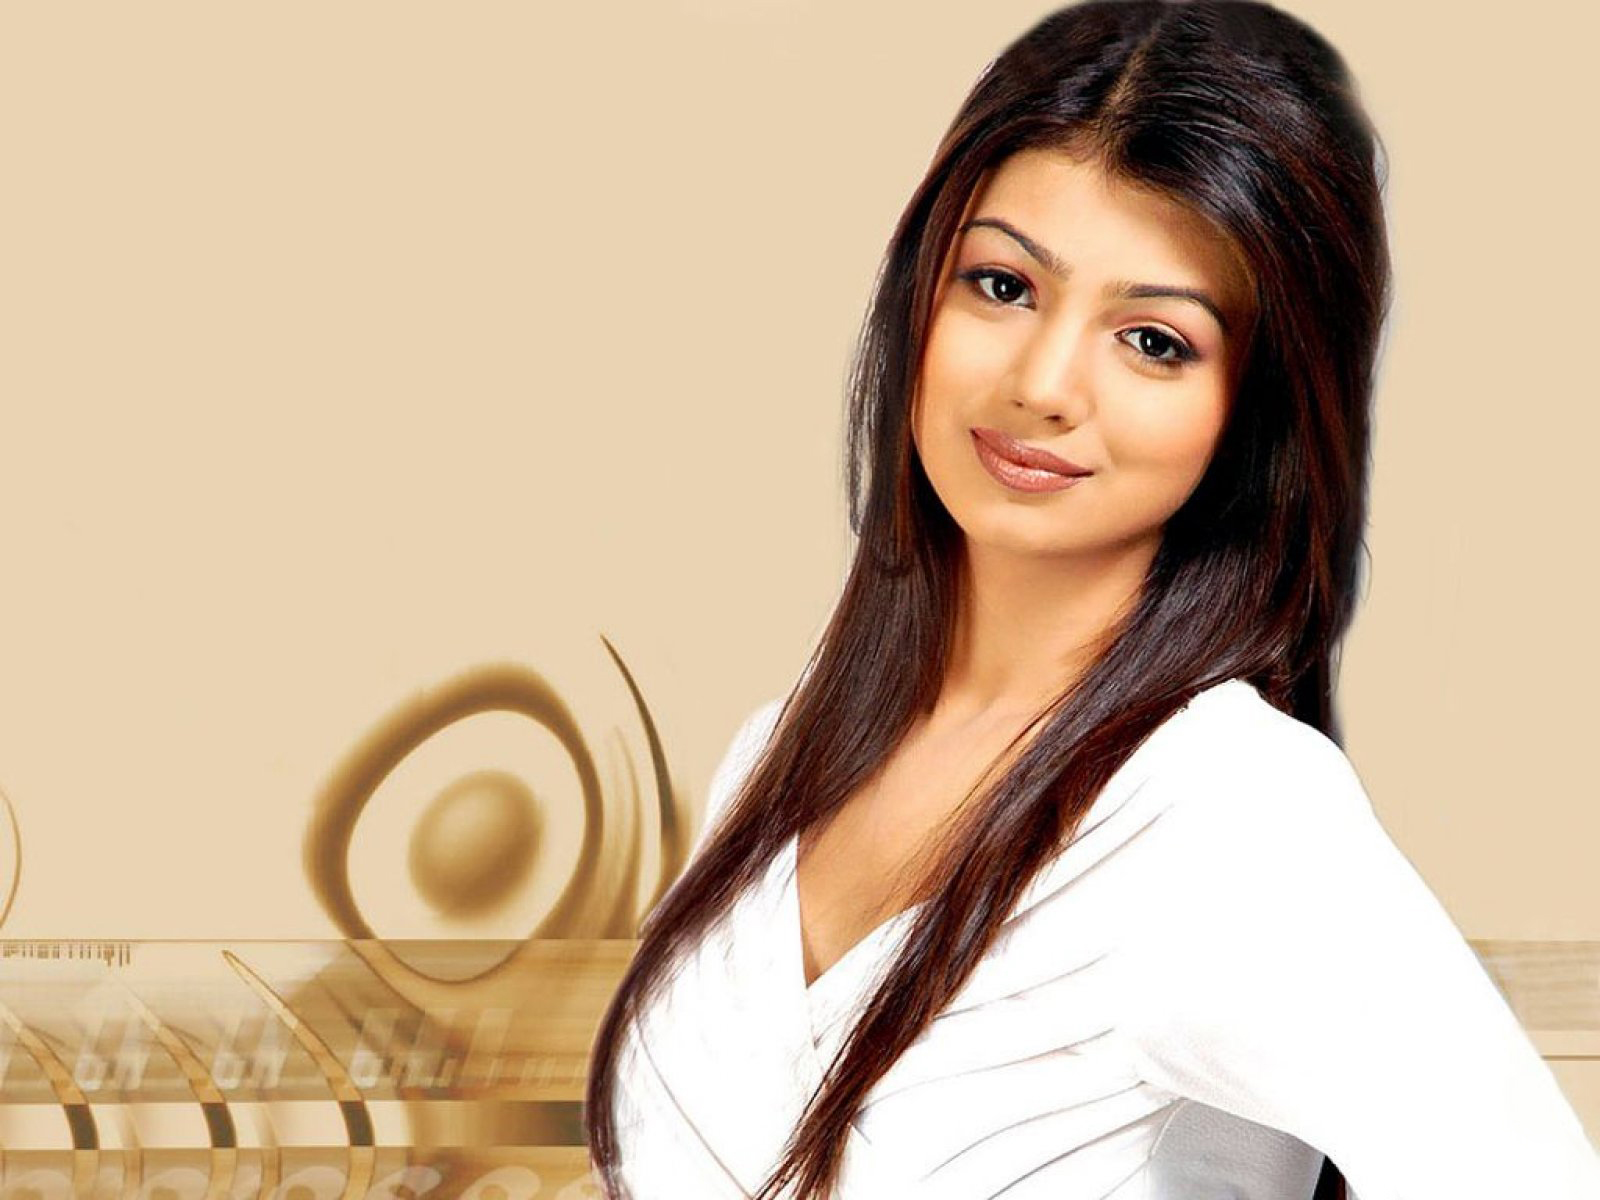 Of Wallpapers Of Ayesha Takia Beautiful And Hot Wallpapers 1600x1200